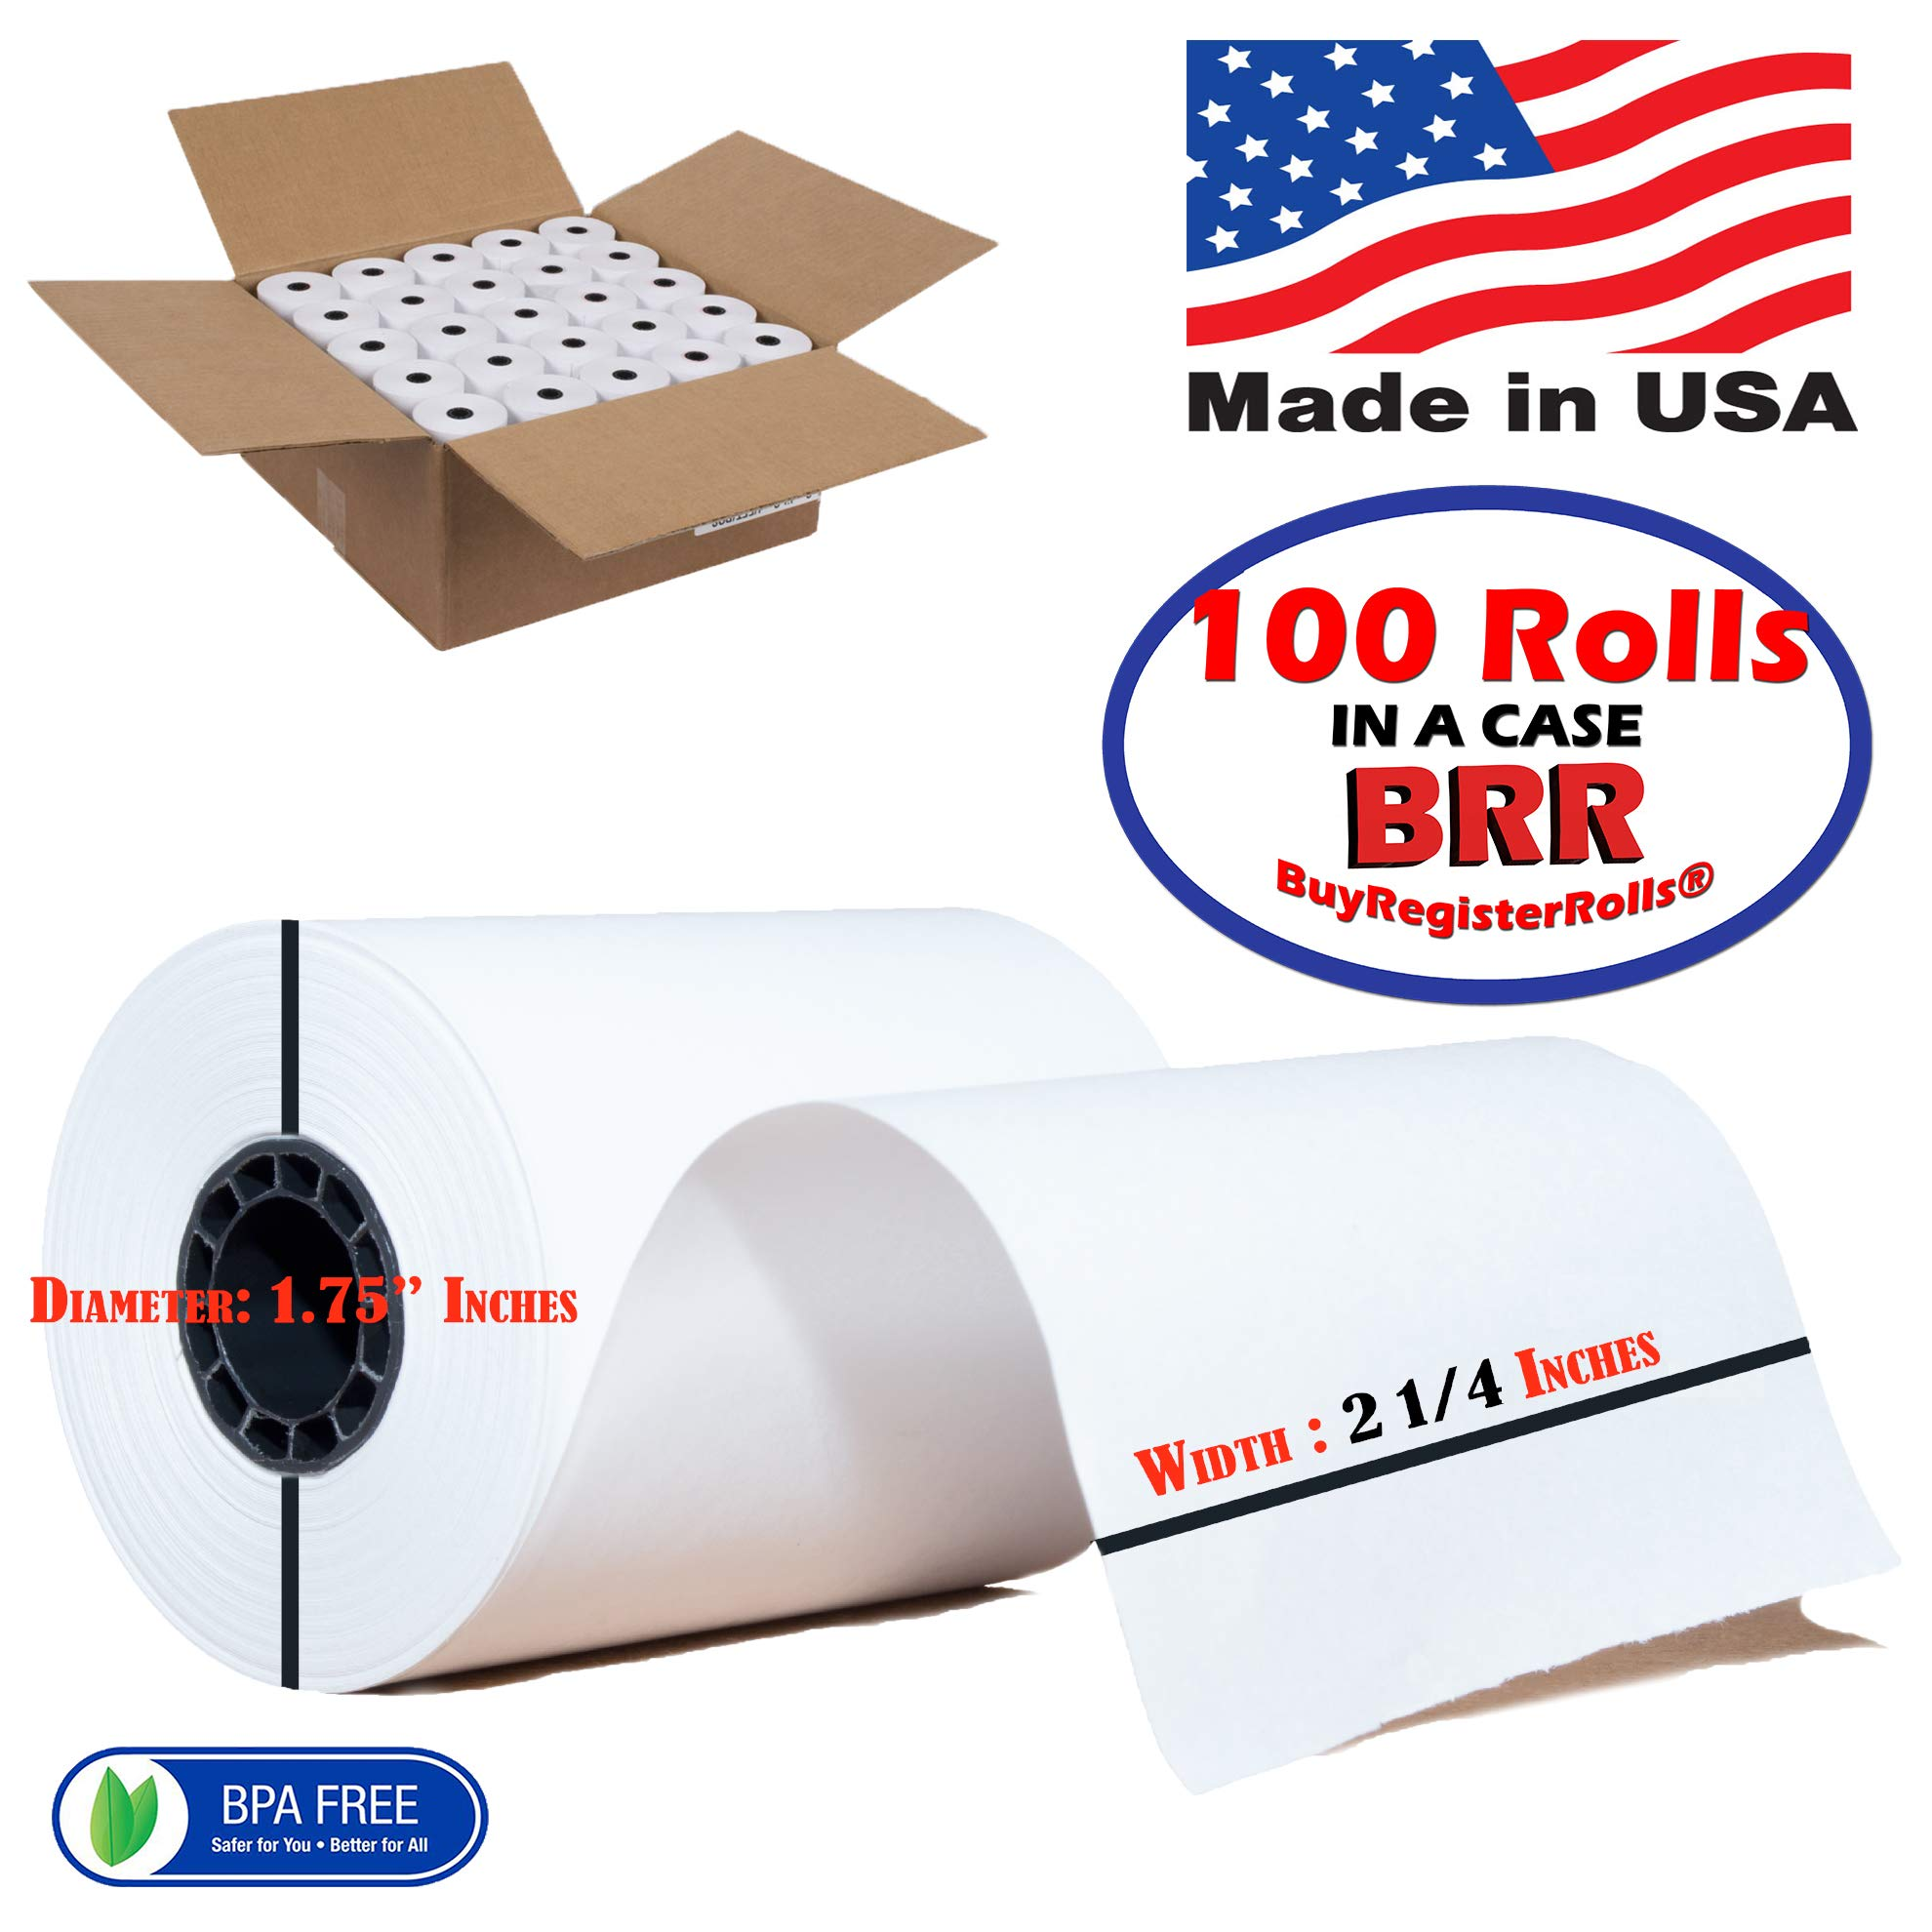 2 1/4 x 85 Thermal Paper 100 Rolls Extra Large roll for Clover Mini,Verifone VX510 VX570 VX610 VX810 VX820 BPA Free Made in USA from BuyRegisterRolls by BuyRegisterRolls